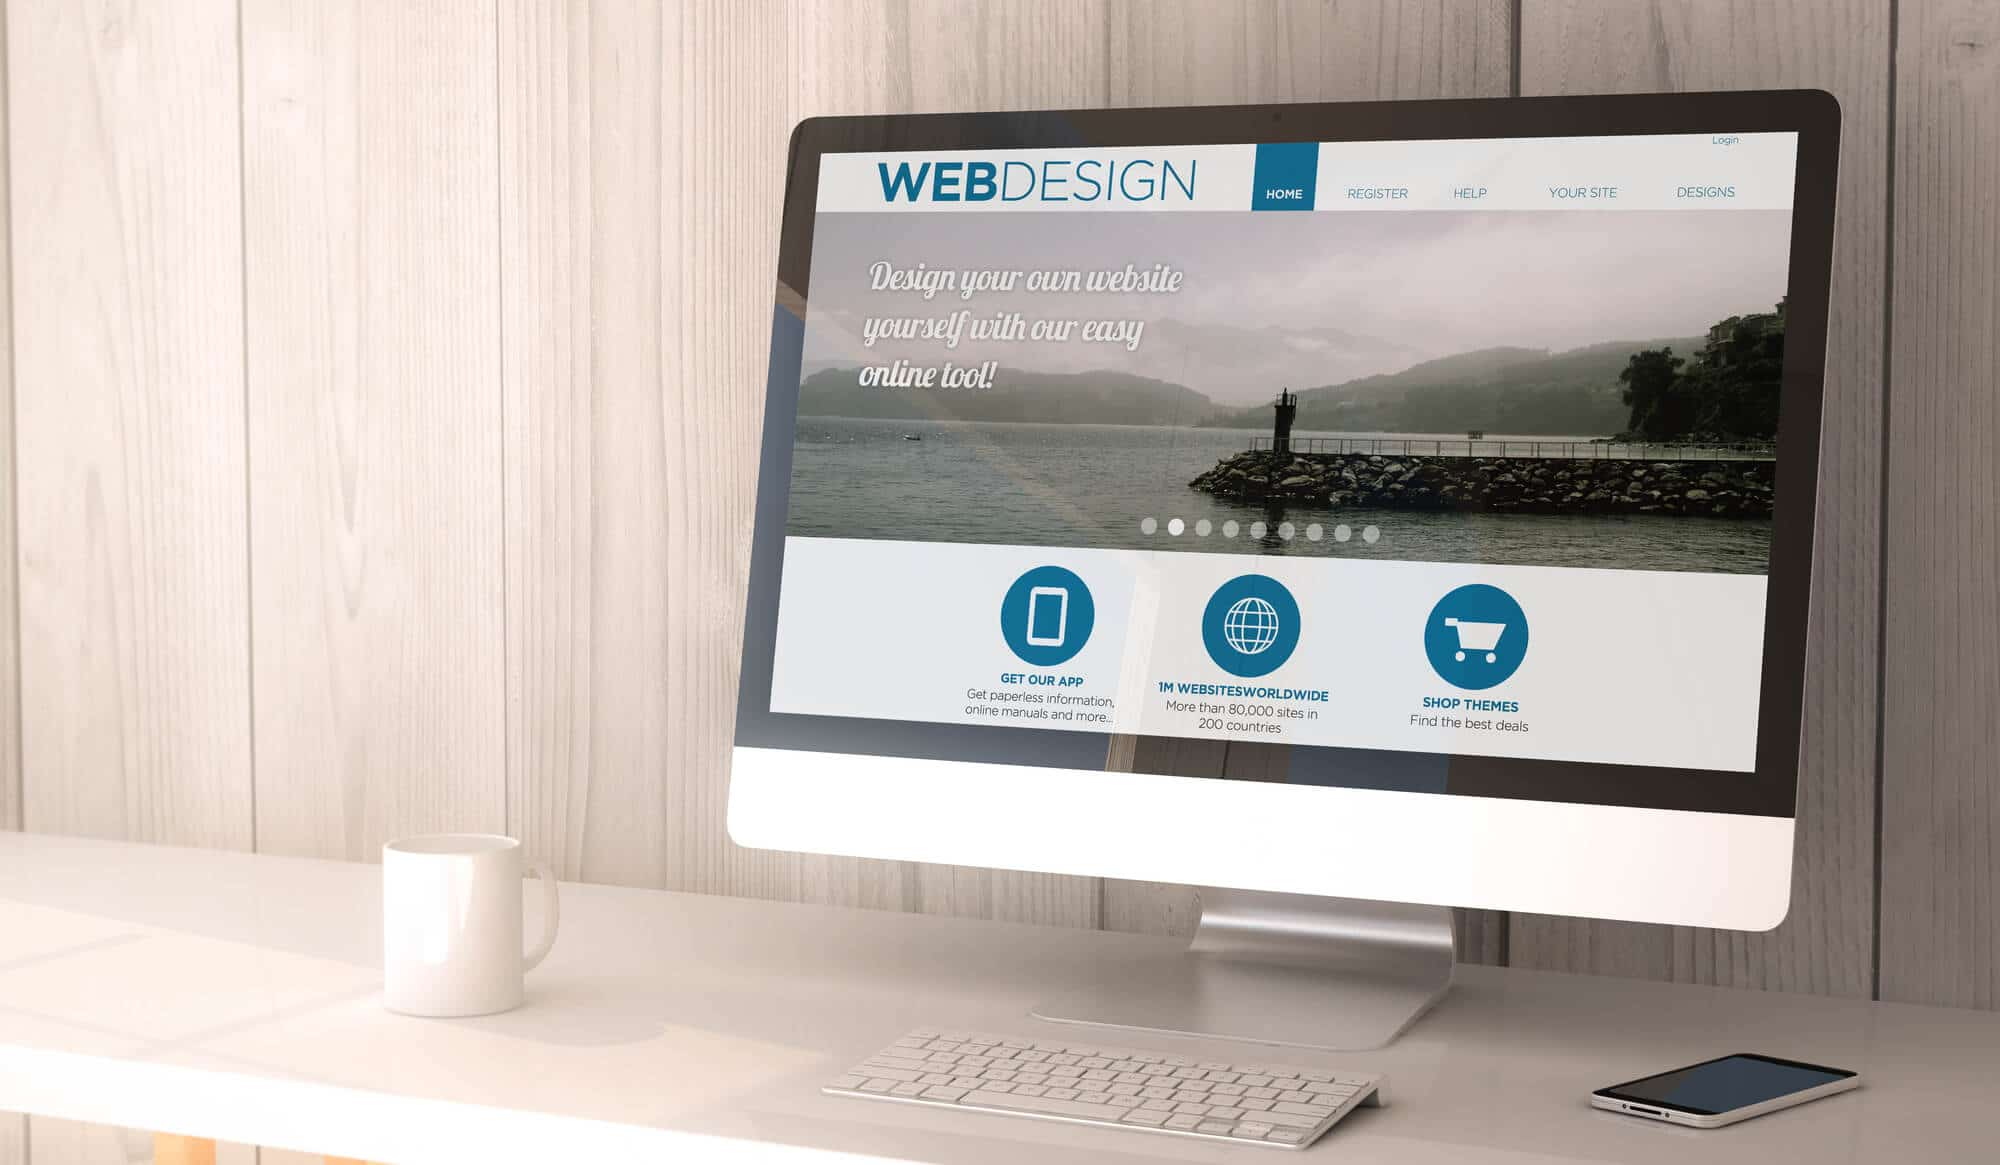 affordable white label web design solutions - Big Easy SEO